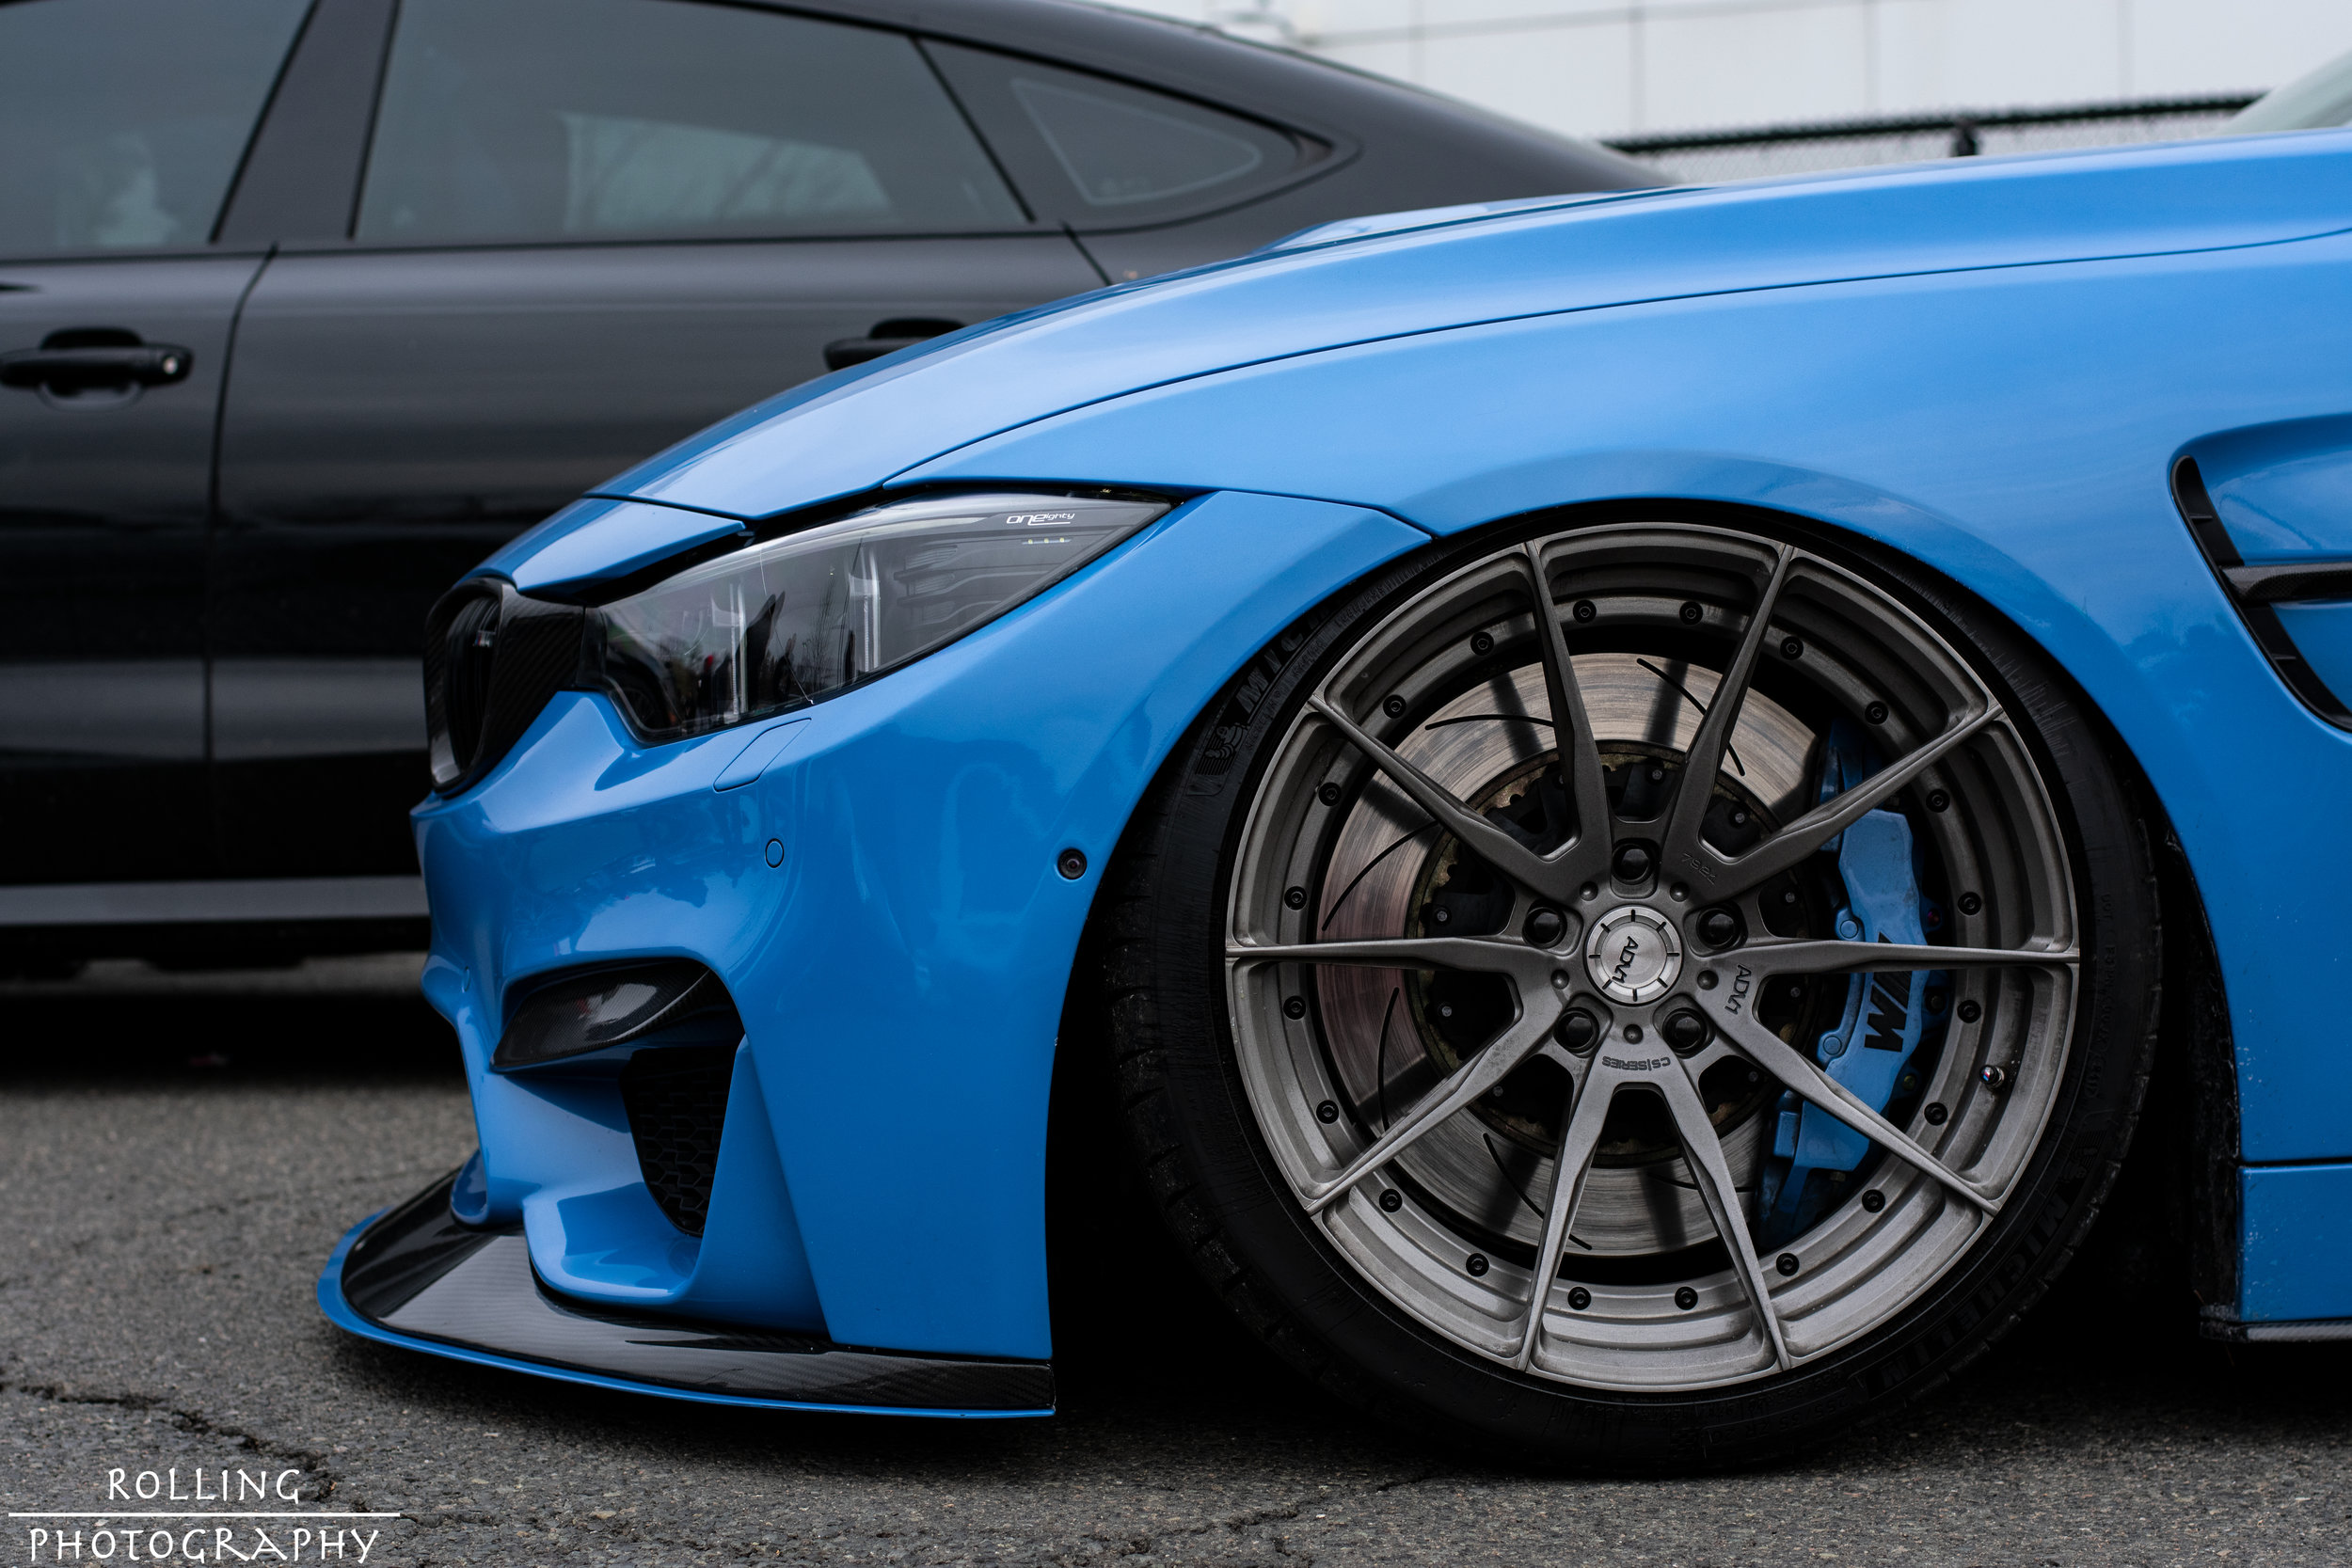 BMW M4 Coupe (F82) (Yas Marina Blue)  @strictly_stance   ISO 200, 50mm, f / 4.5 Shutter Speed 1/640